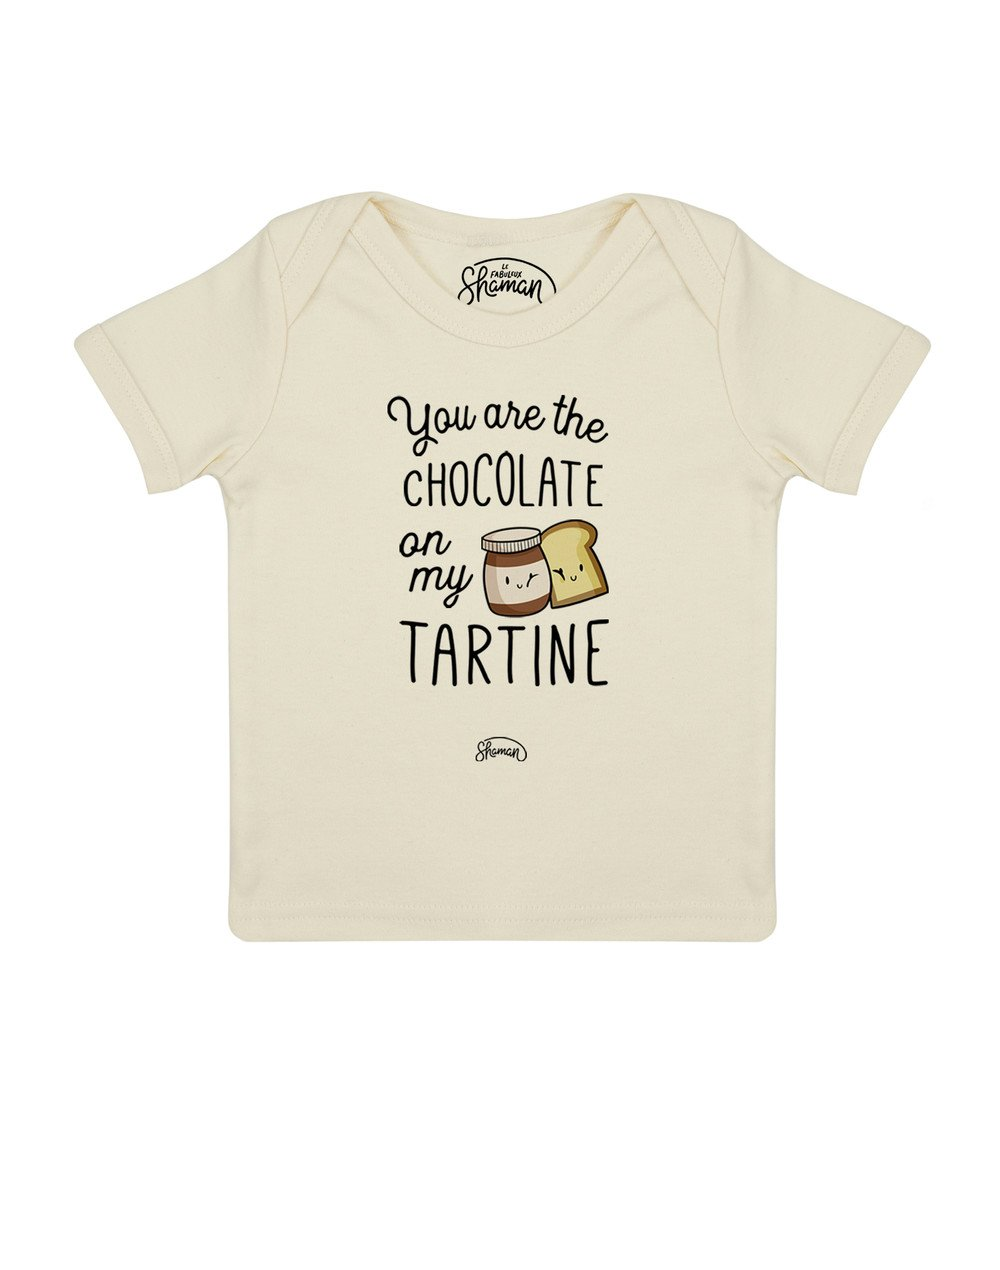 Tee shirt Chocolate tartine